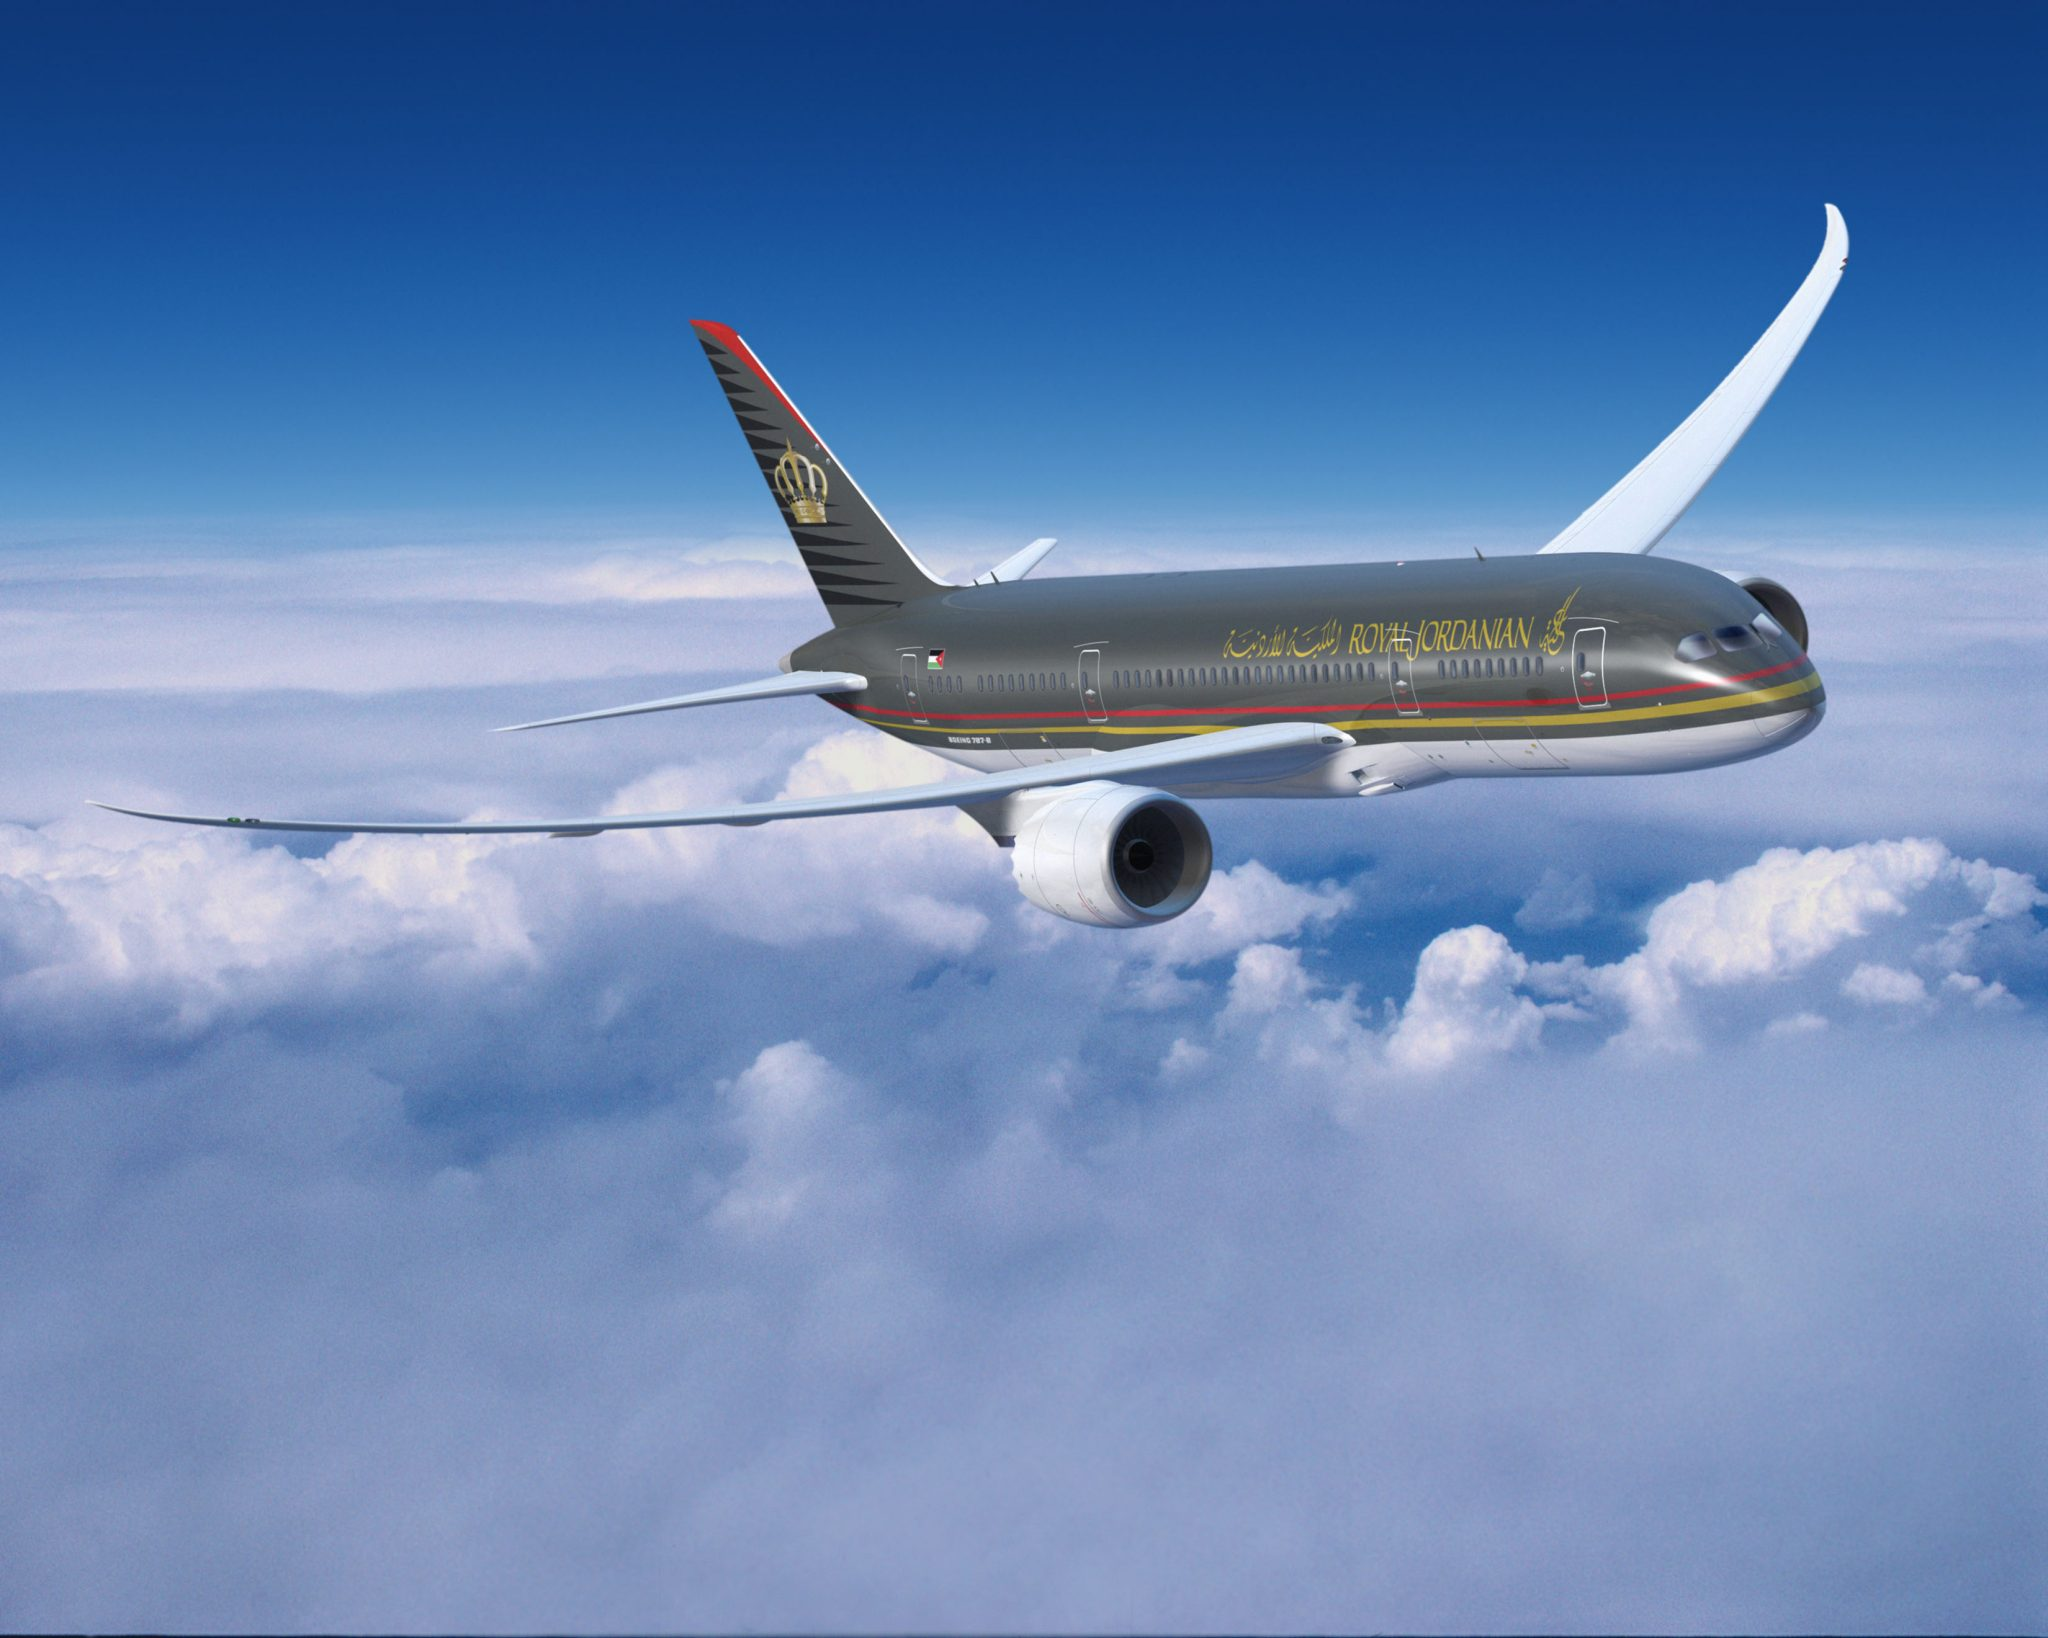 A Royal Jordanian Boeing 787 Dreamliner in flight